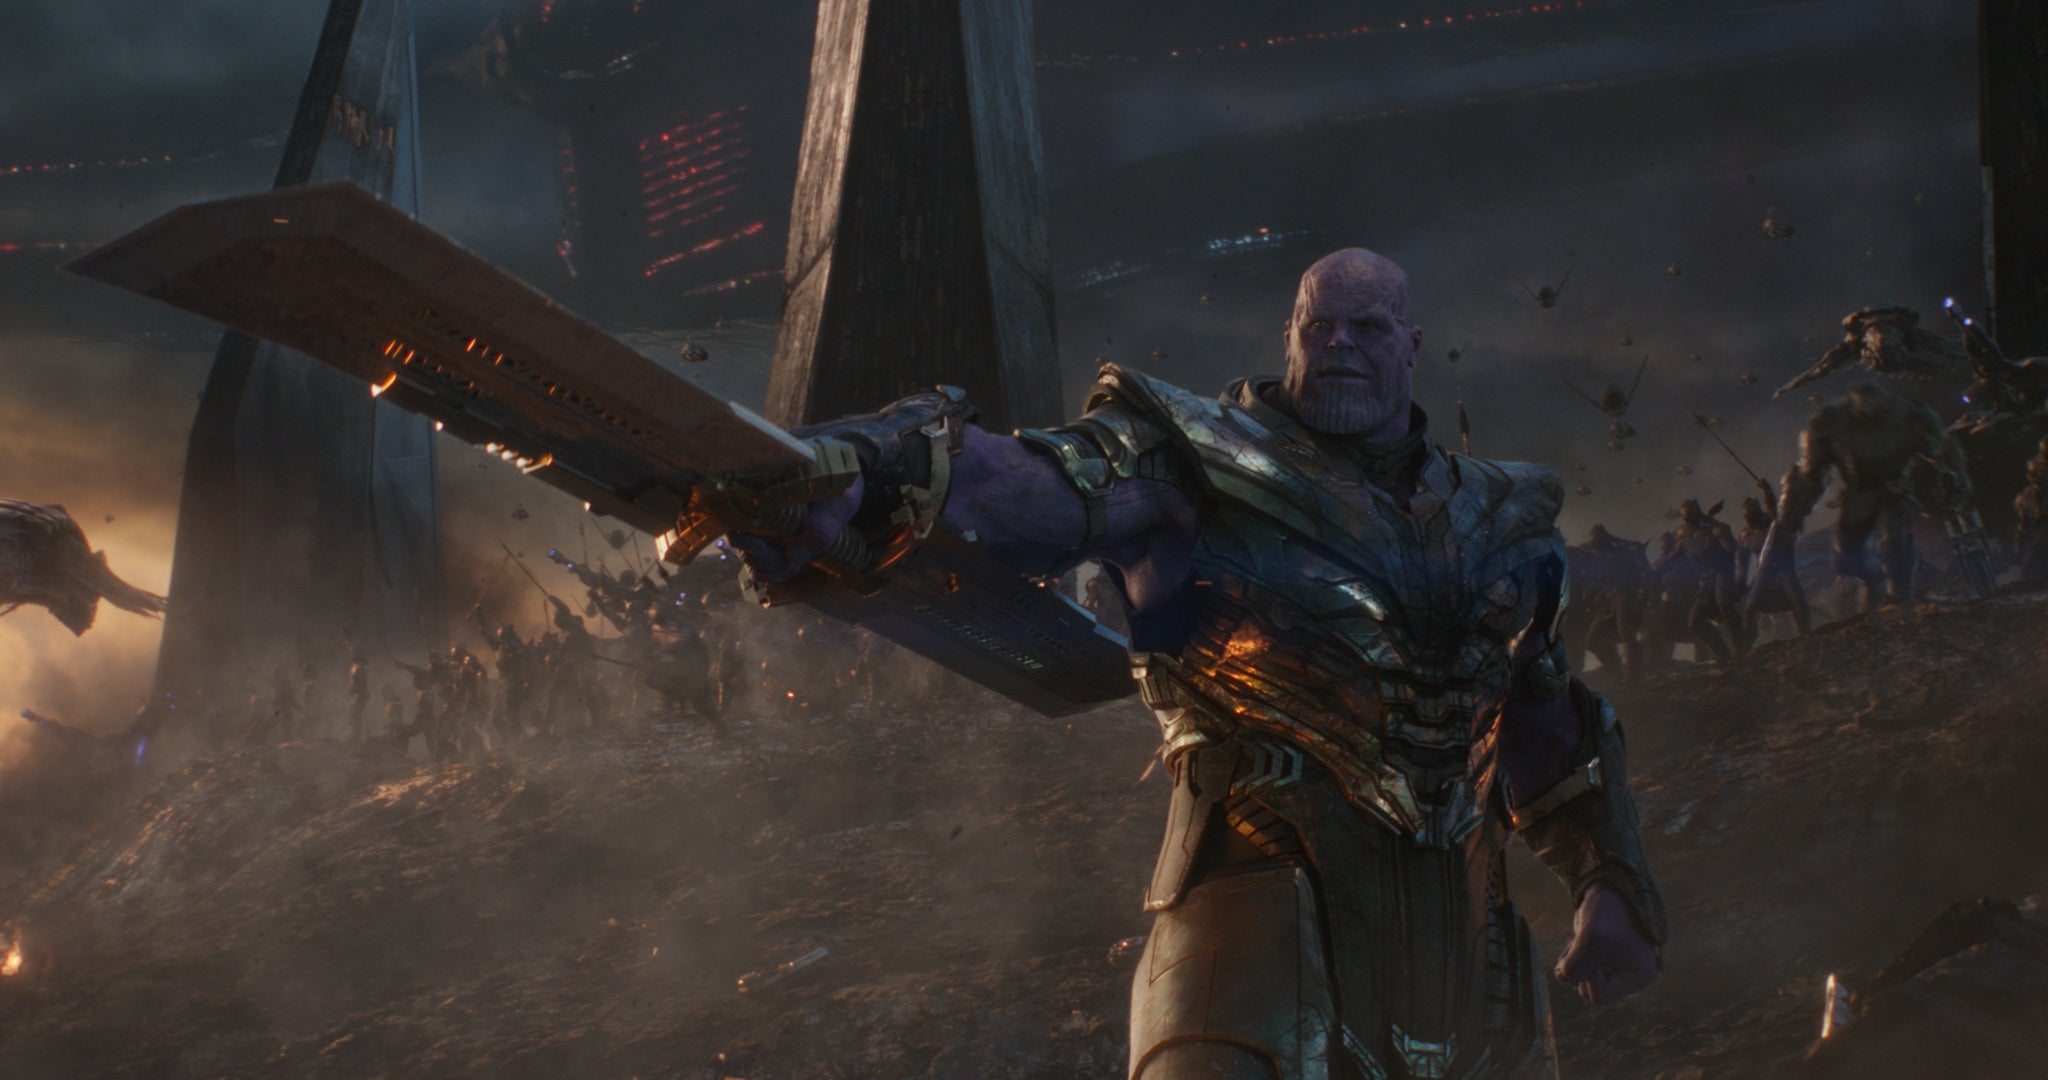 What Would Happen To Earth If The Avengers Undid Thanos' Snap?